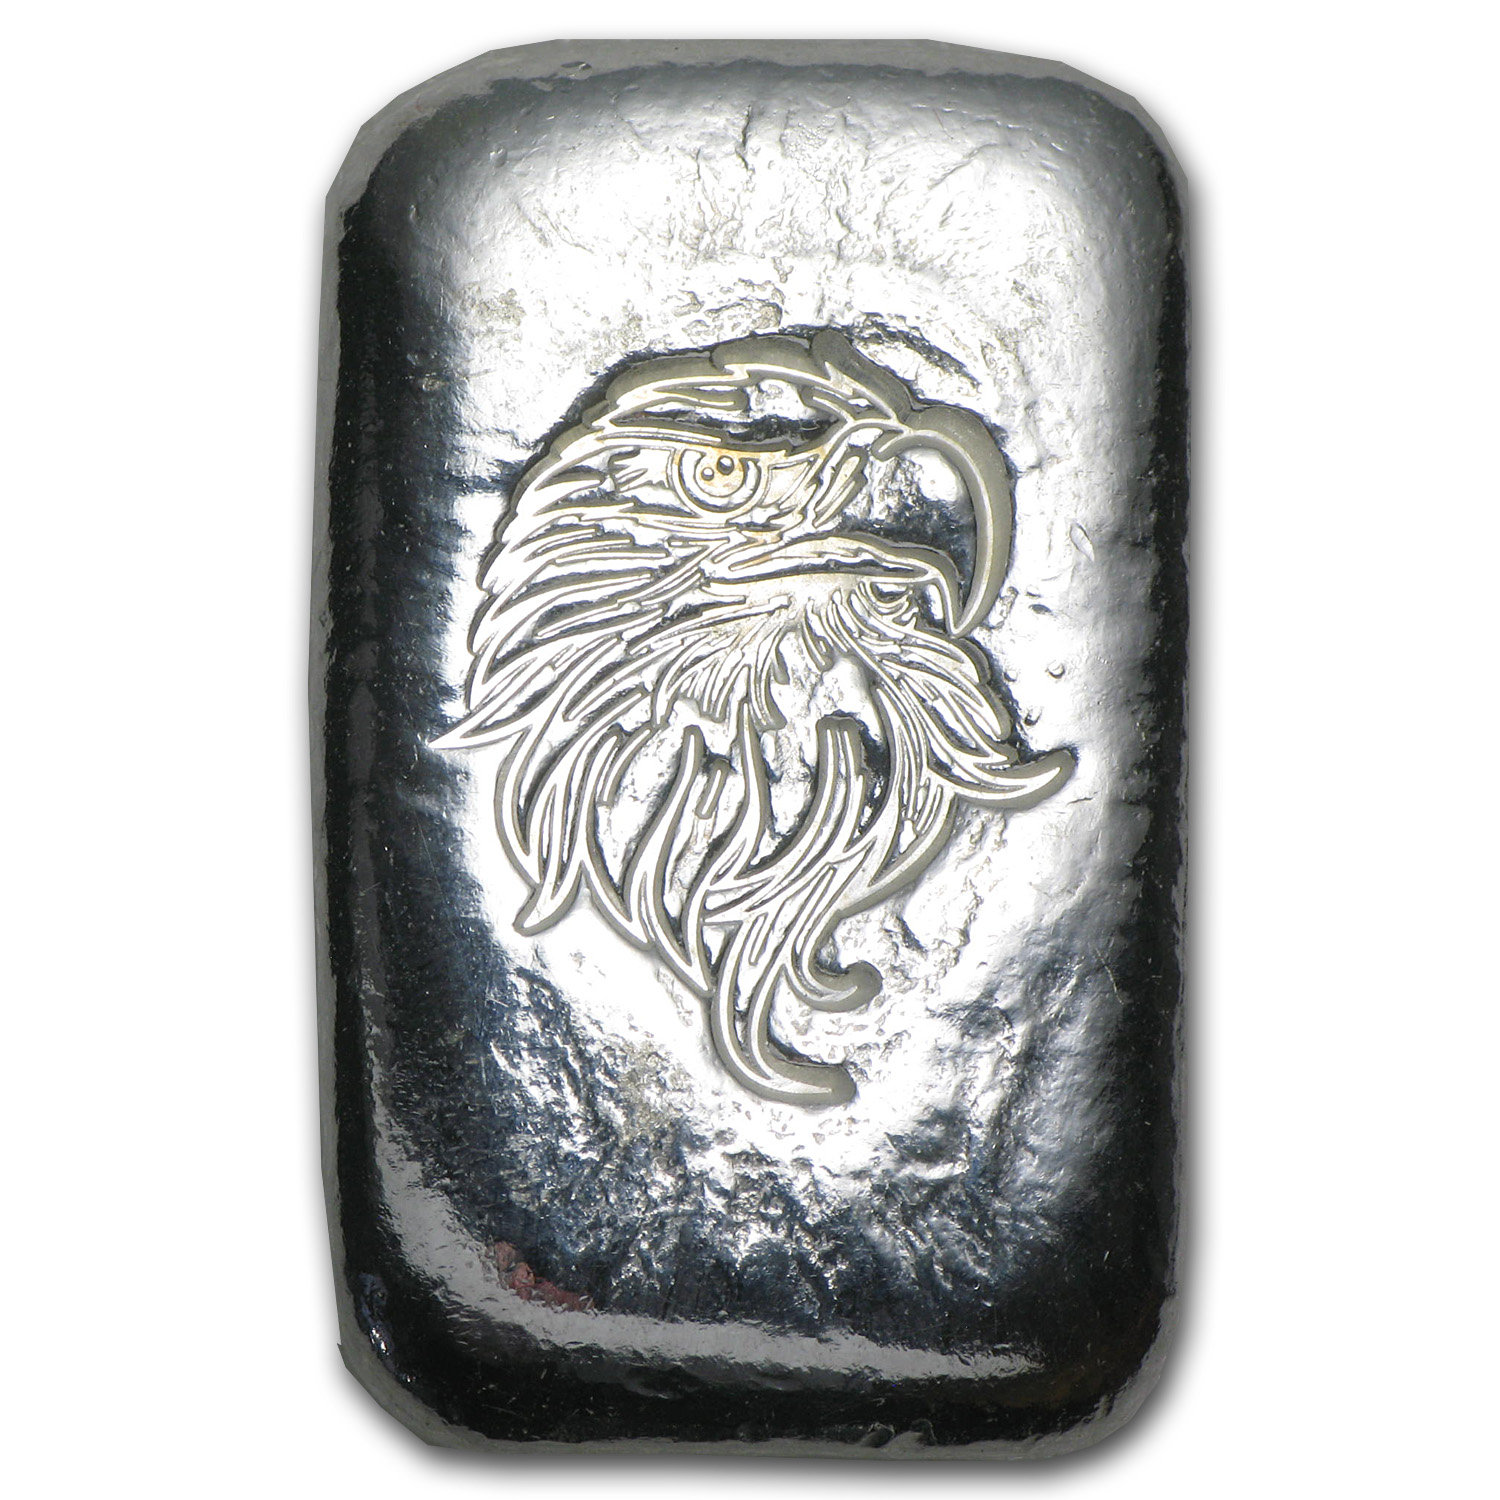 1 oz Silver Bar - Atlantis Mint (Eagle Head)